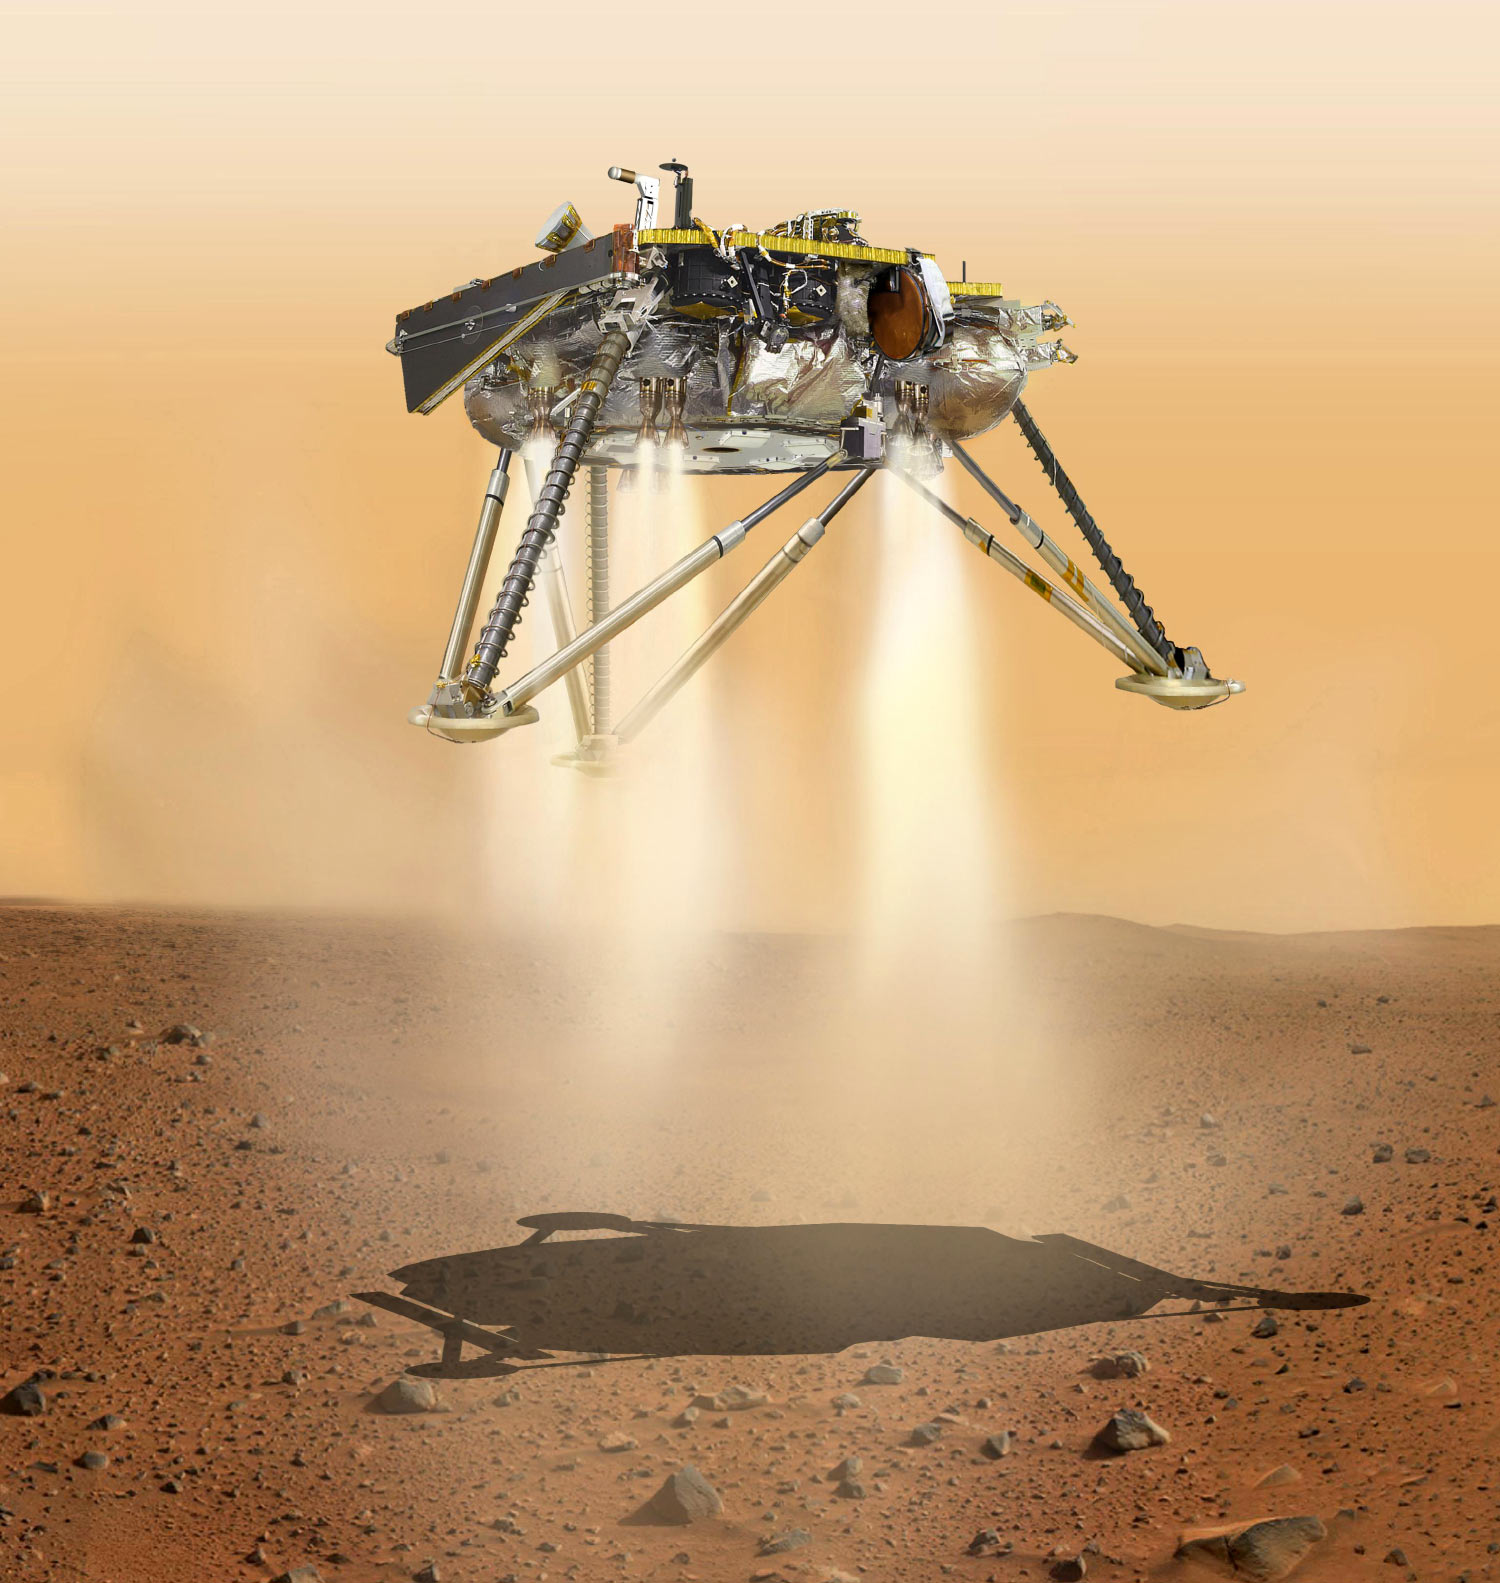 NASA Probe Lands Safely On Martian Surface 03:19 Download